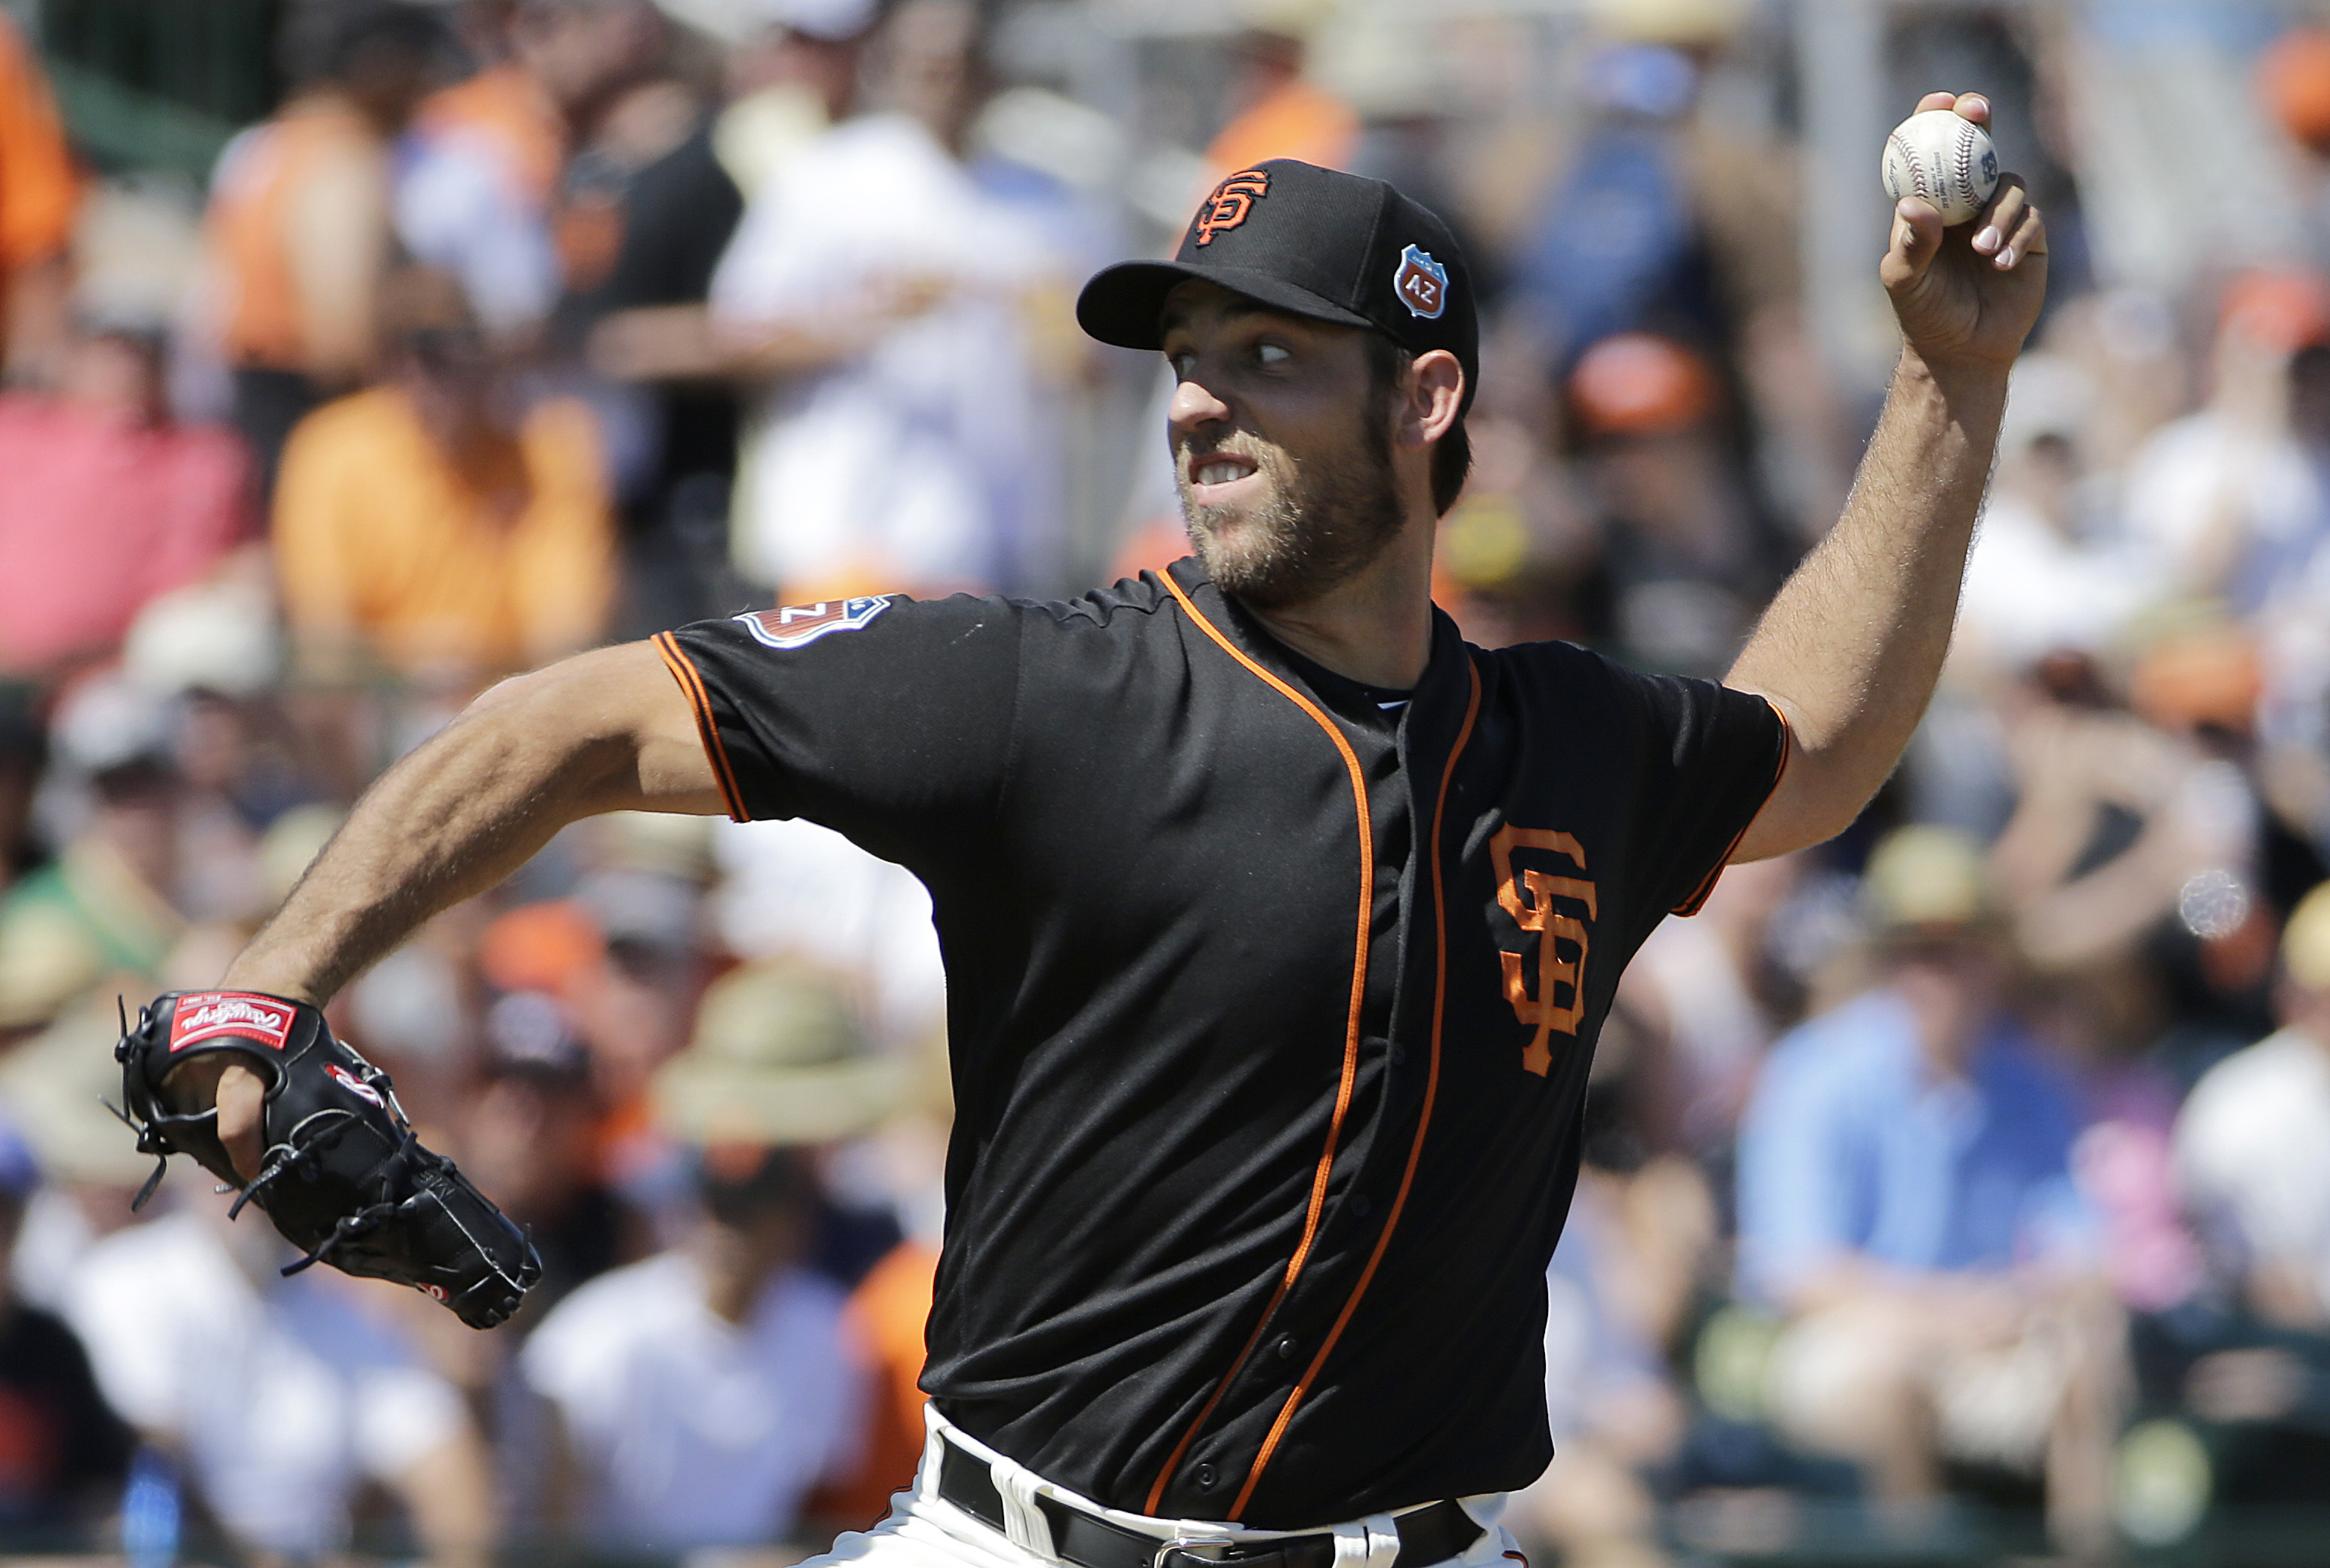 FILE - In this March 19, 2016, file photo, San Francisco Giants starting pitcher Madison Bumgarner throws during the first inning of a spring training baseball game against the Oakland Athletics in Scottsdale, Ariz. The Giants play the Milwaukee Brewers i